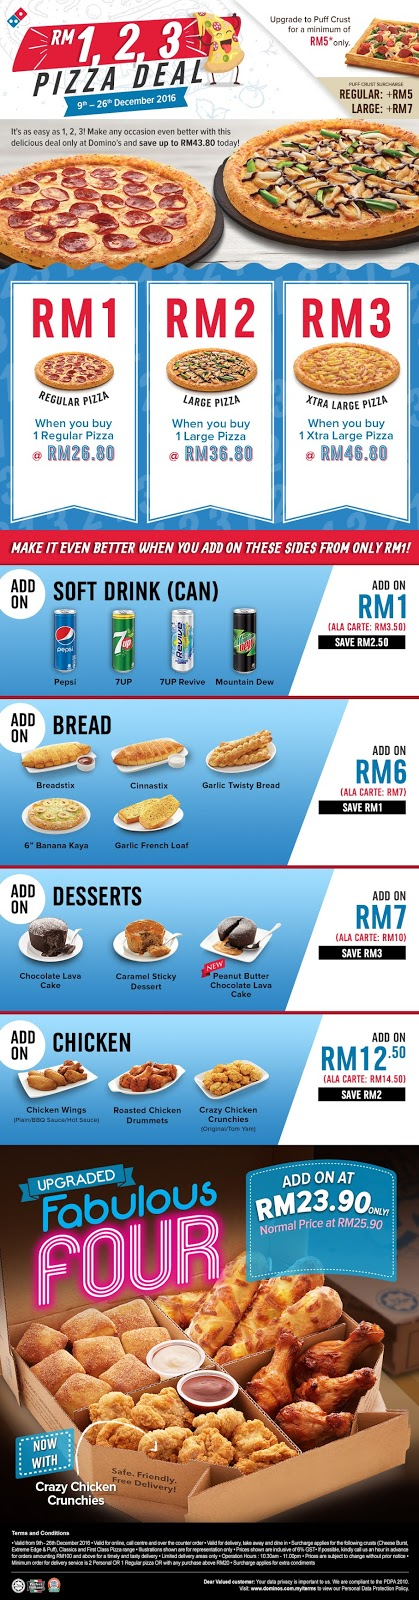 Domino's Pizza Malaysia Deal Regular Extra Large